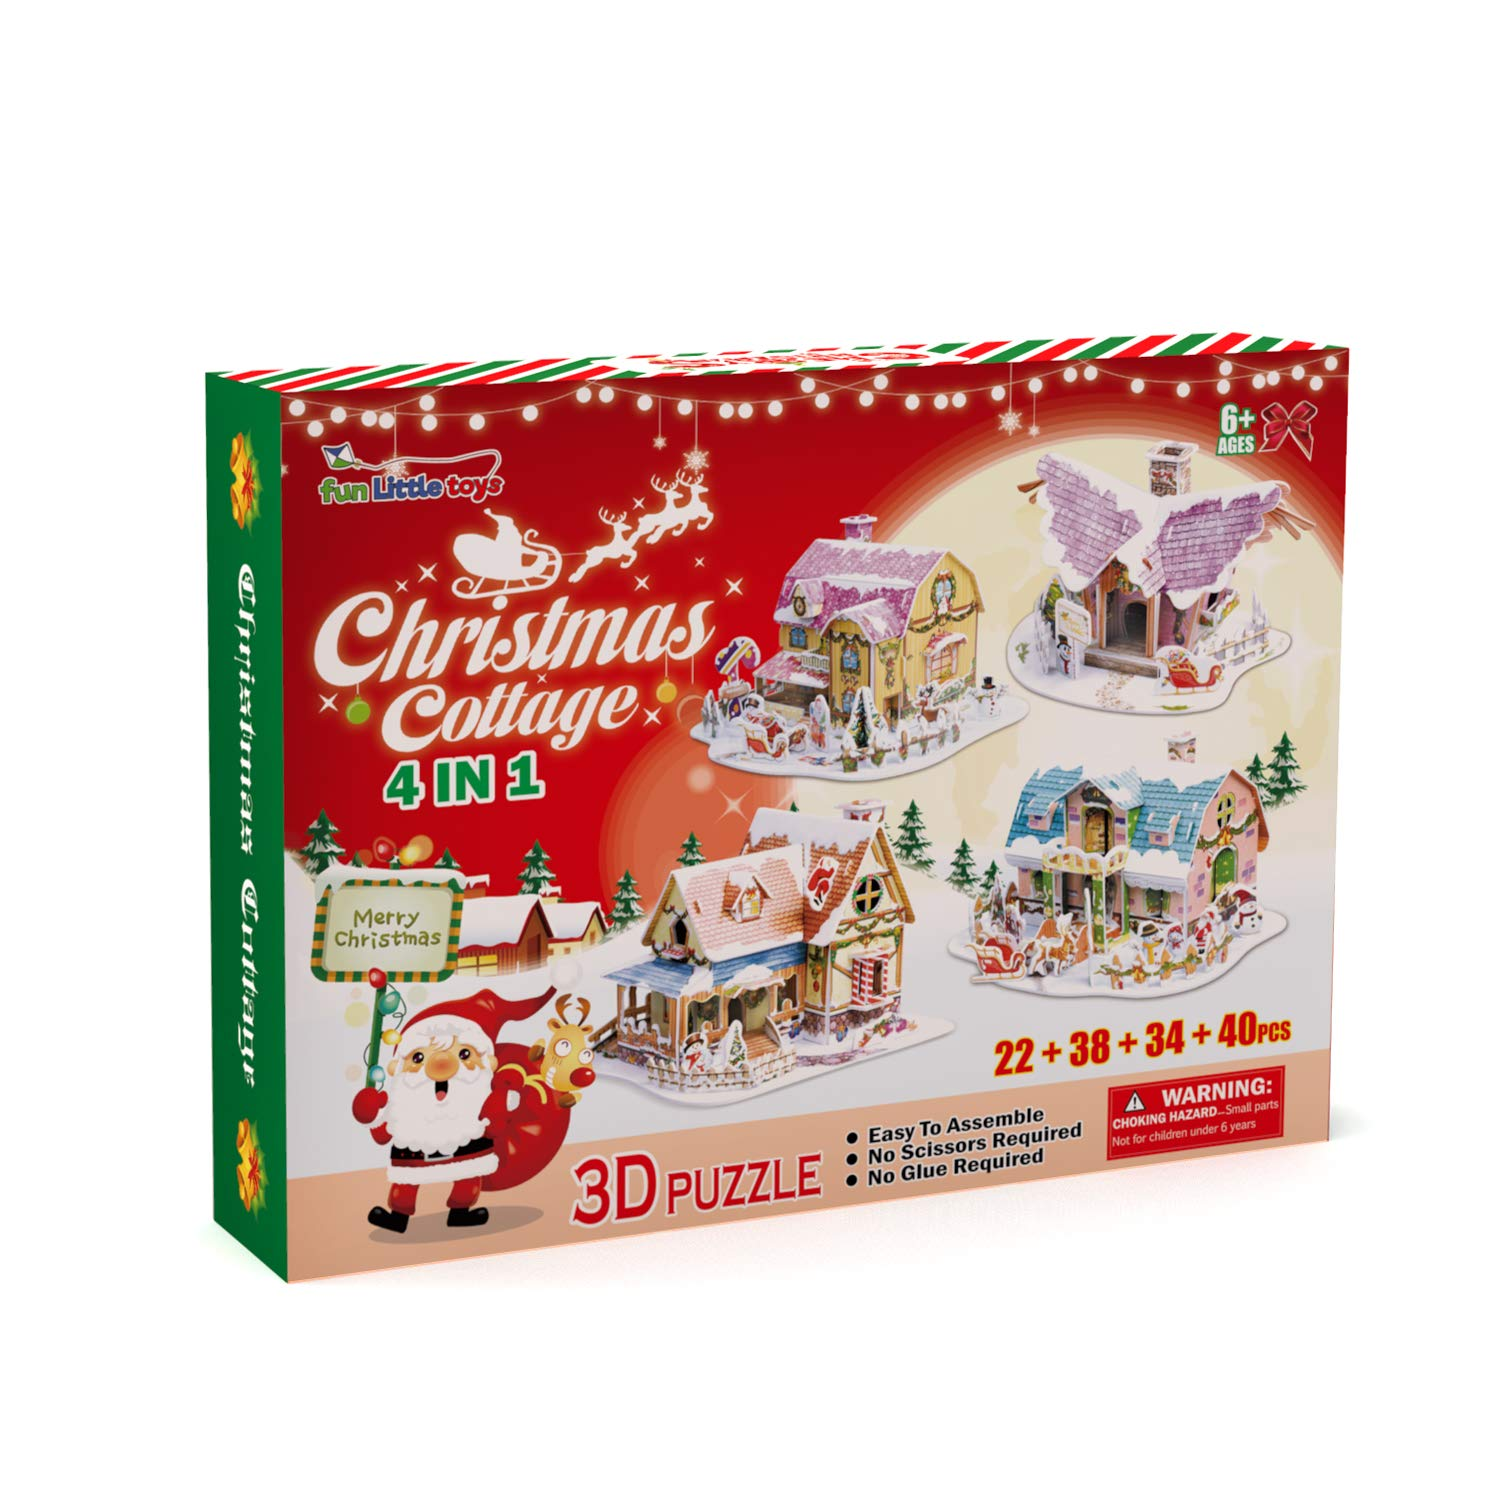 Amazon Christmas Decorations 3D Puzzles for Kids in 4 Styles